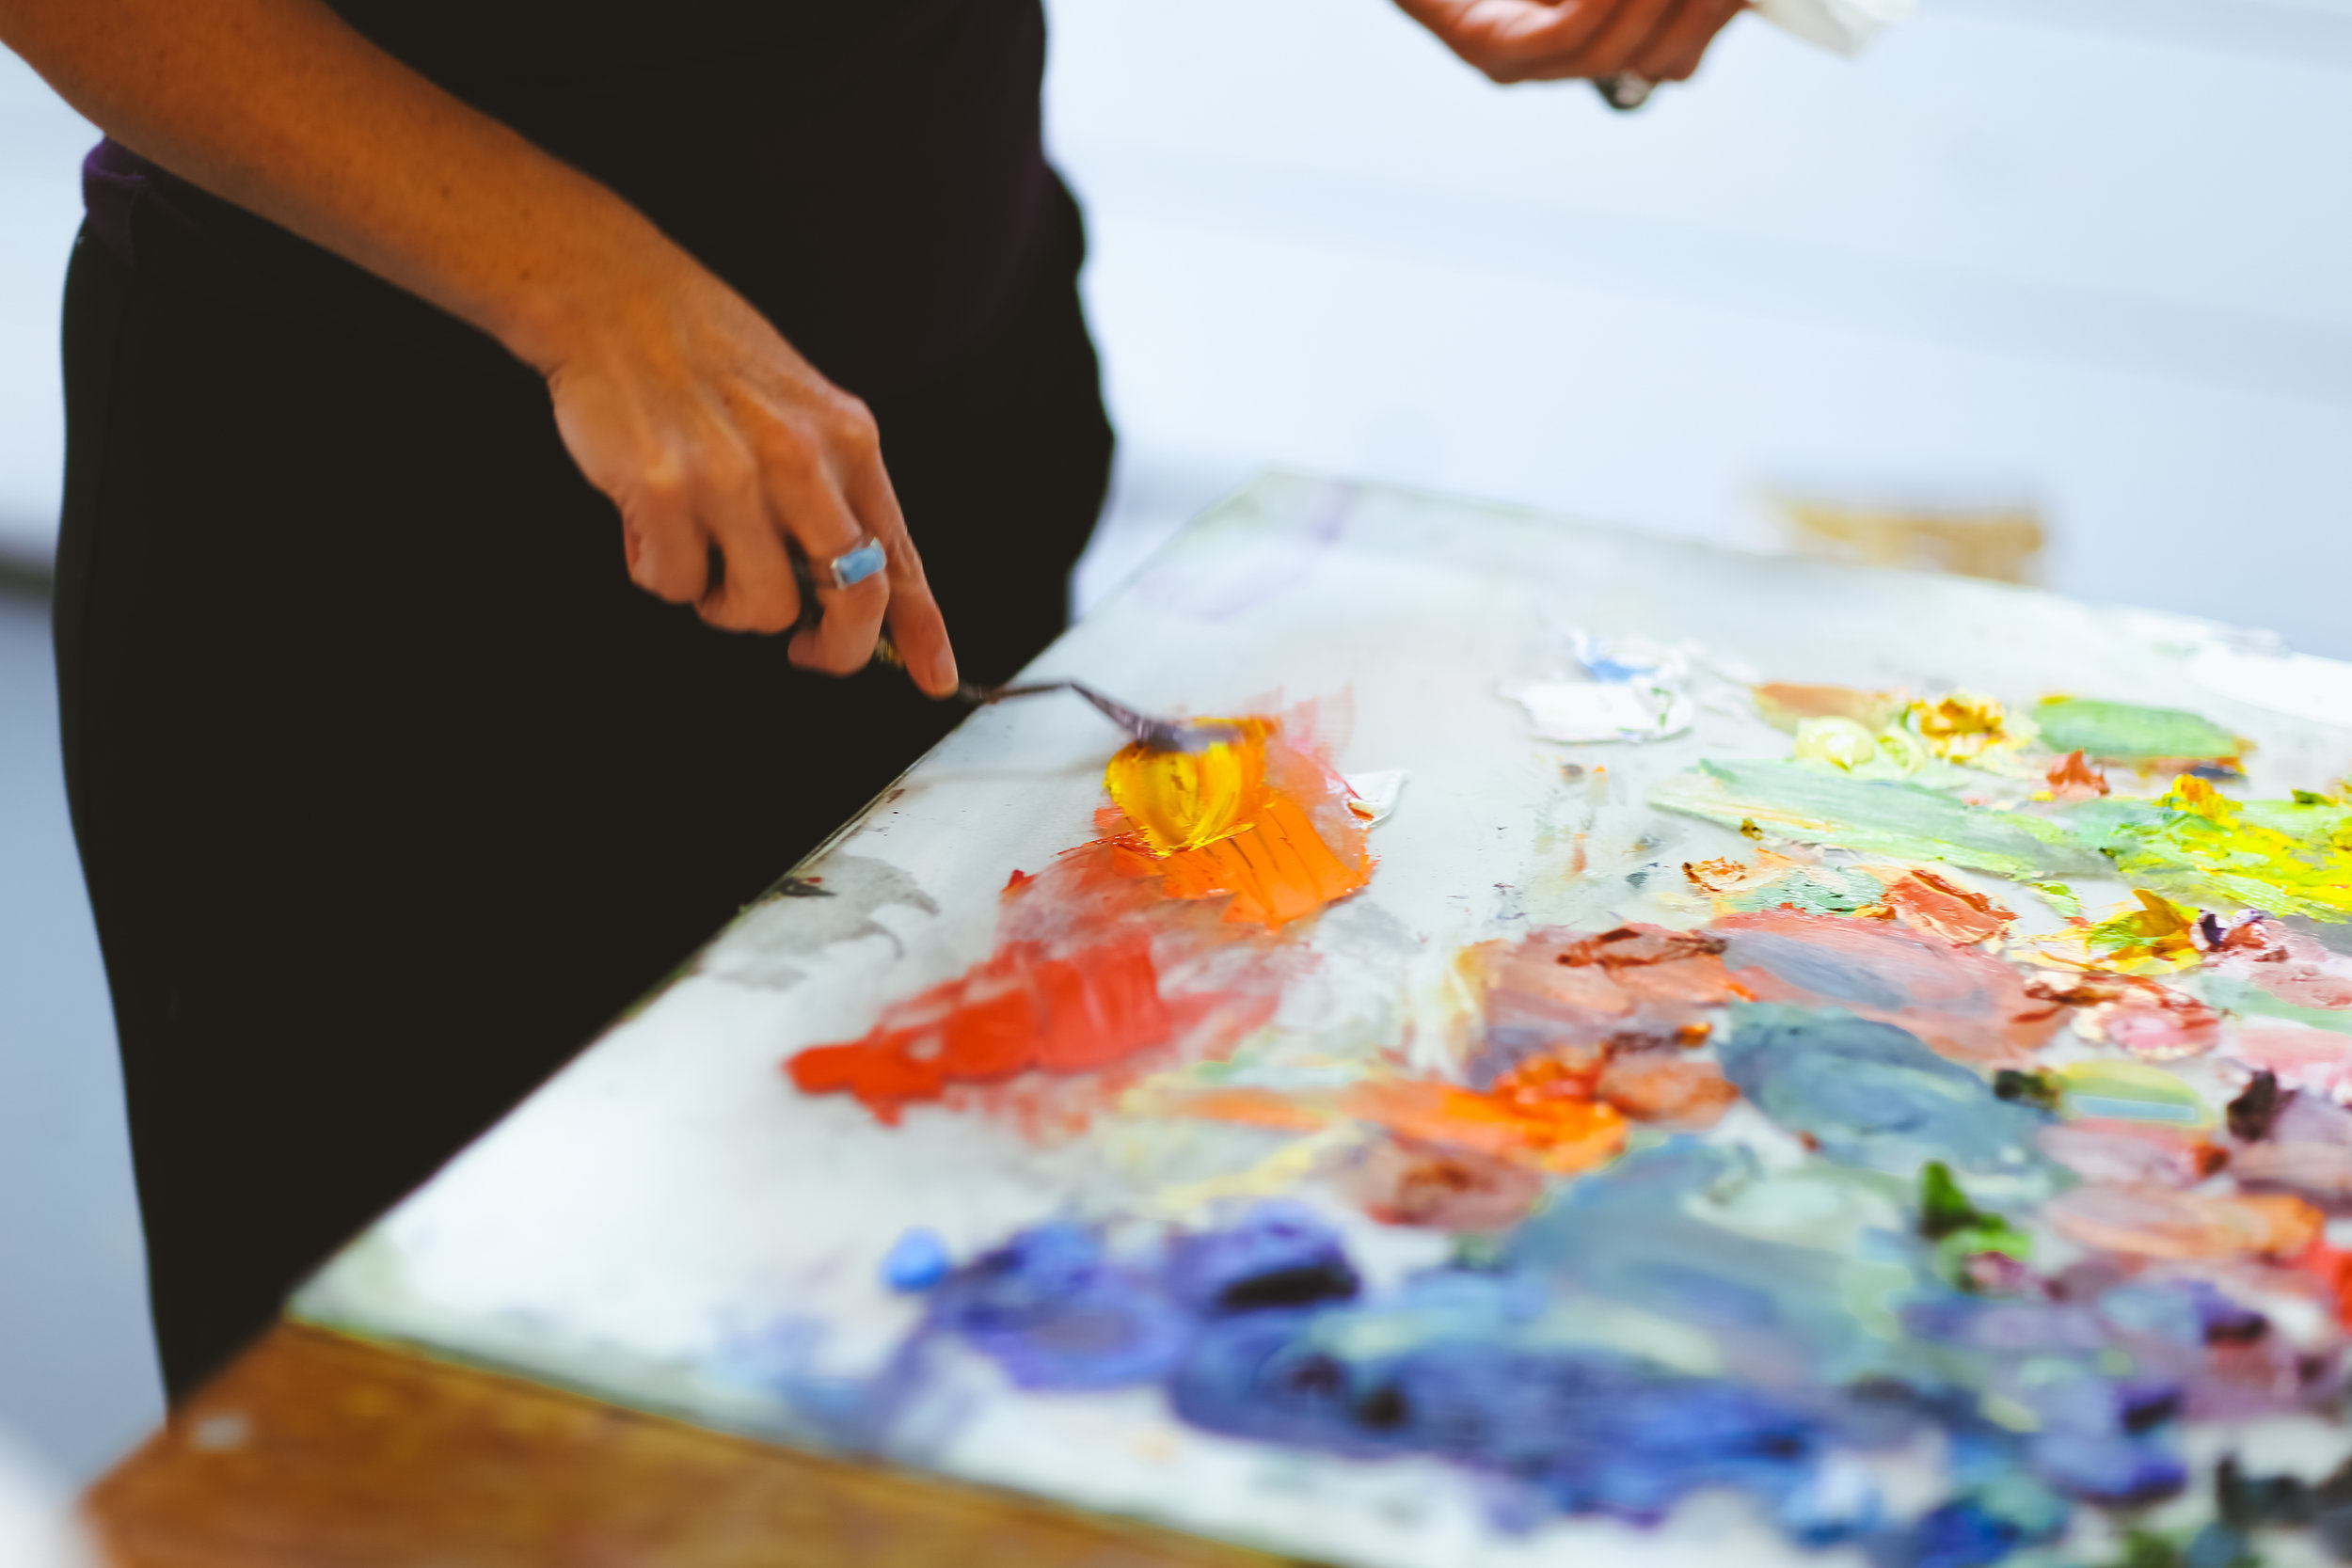 Mixing paint on my palette - I use a large piece of glass on a table, backed with white or grey paper.